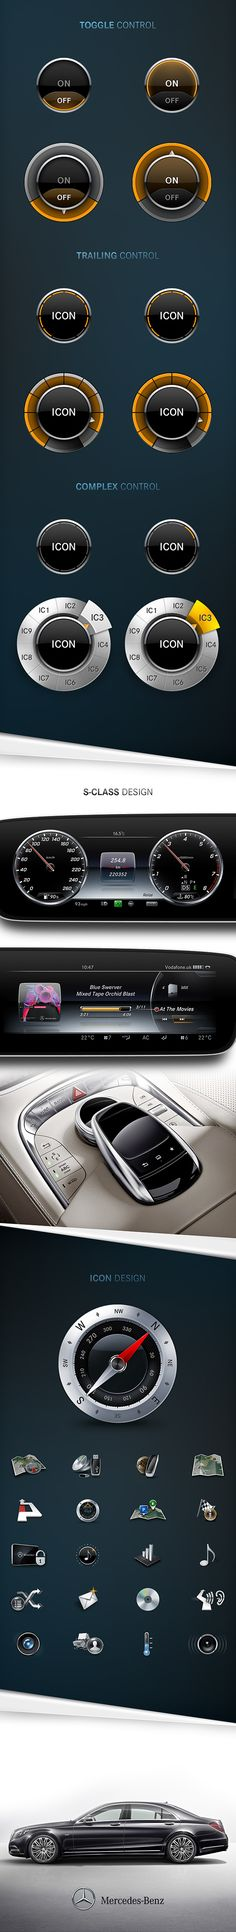 Mercedes-Benz UI/UX by Denny Moritz, via Behance